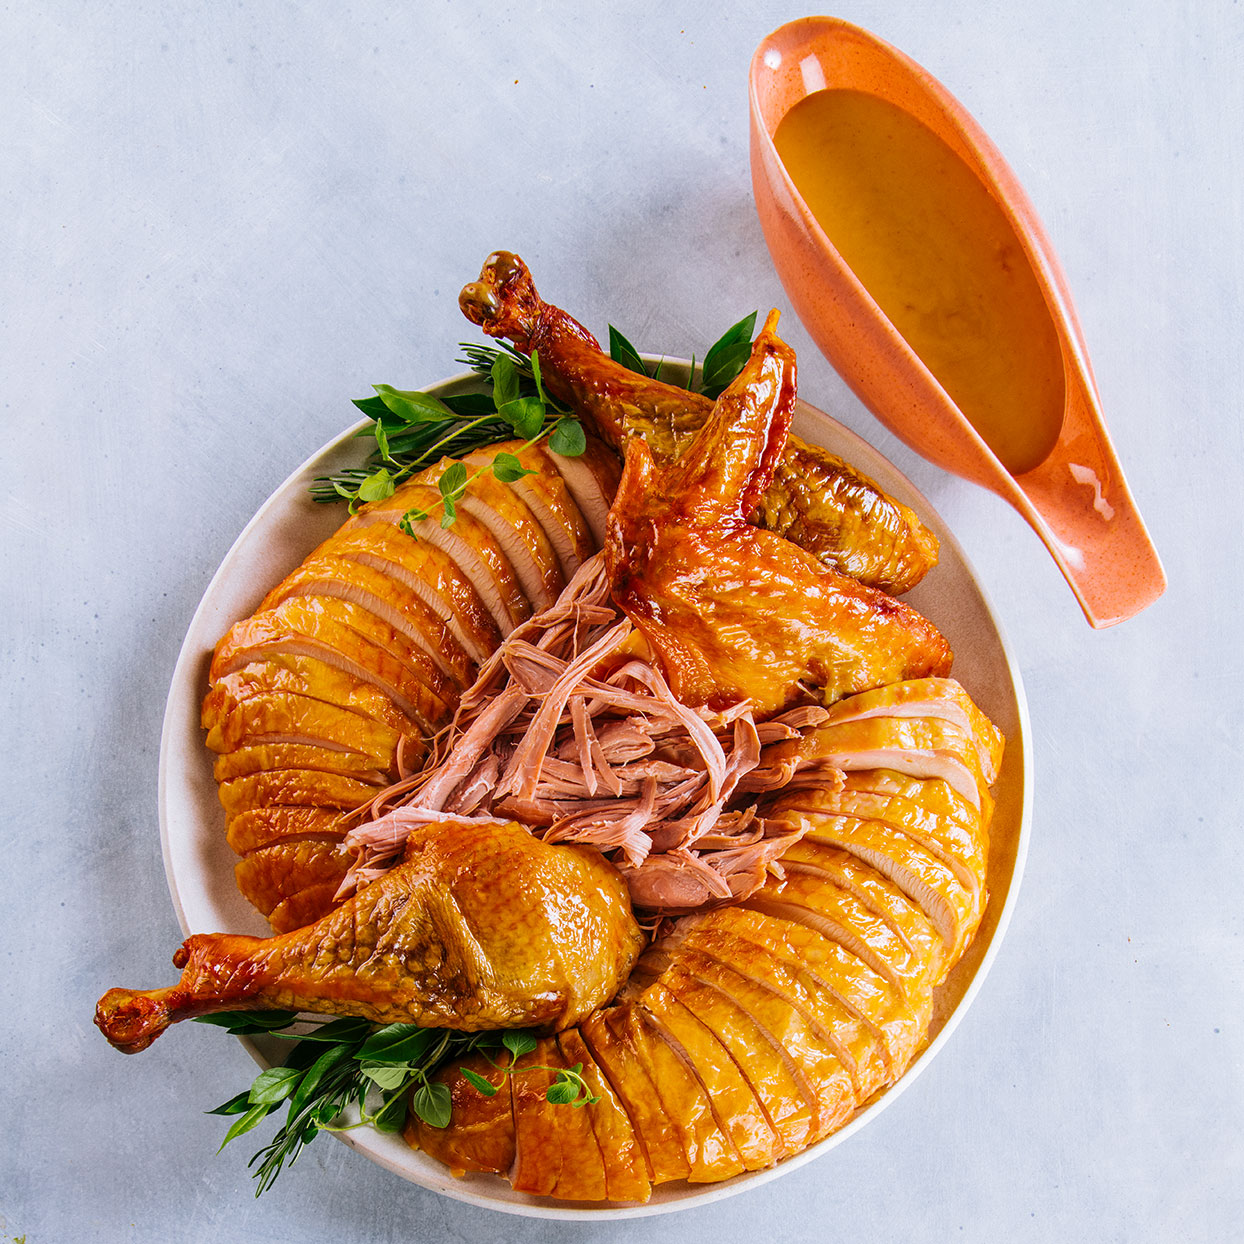 Traditional Roast Turkey with Giblet Gravy Trusted Brands